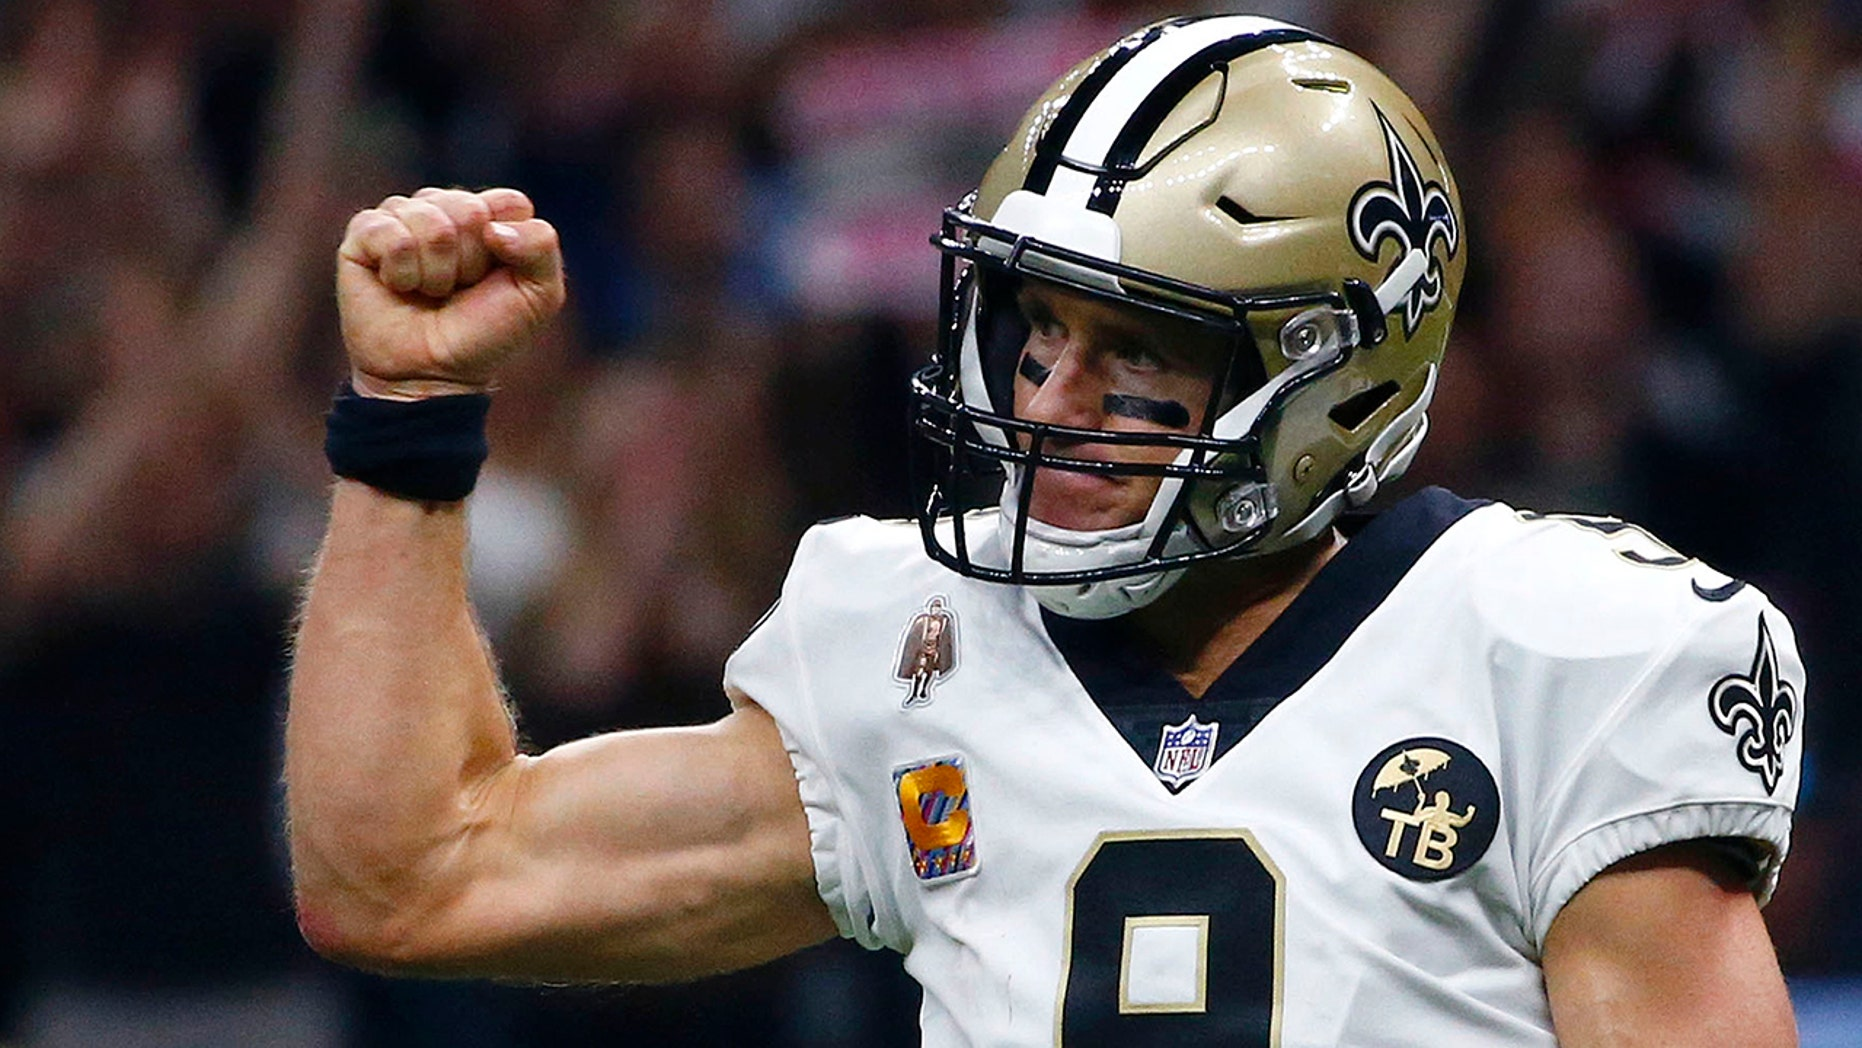 New Orleans Saints quarterback Drew Brees (9) reacts after throwing a touchdown pass in the first half of an NFL football game in New Orleans, Oct. 8, 2018.